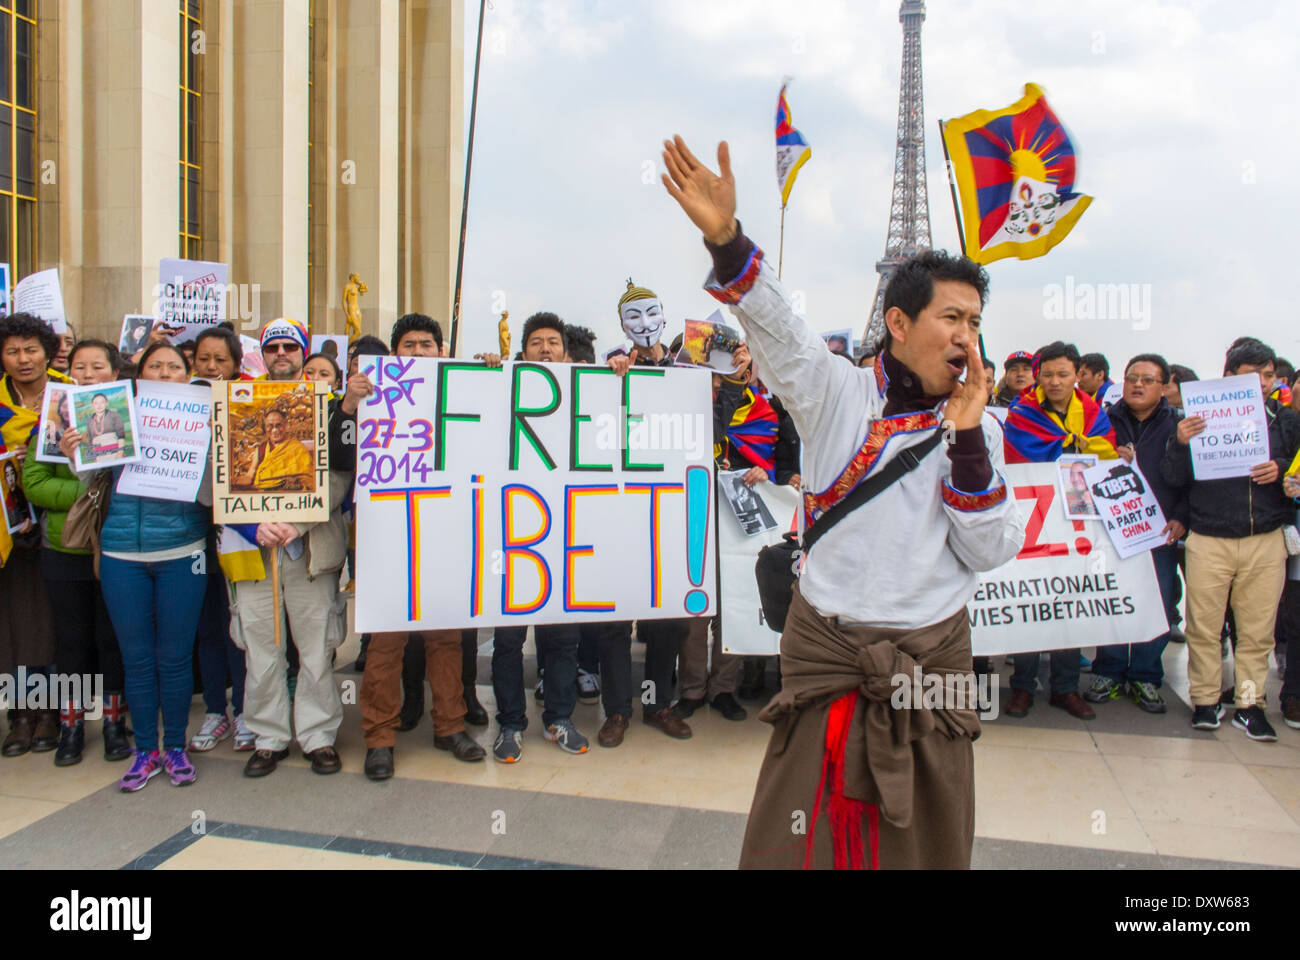 Crowd of Tibetan, Taiwanese, Ethnic Communities of France, Migrants and Friends called for French citizens to mobilize during the visit of Chinese President in Paris, Holding Protest signs Stock Photo